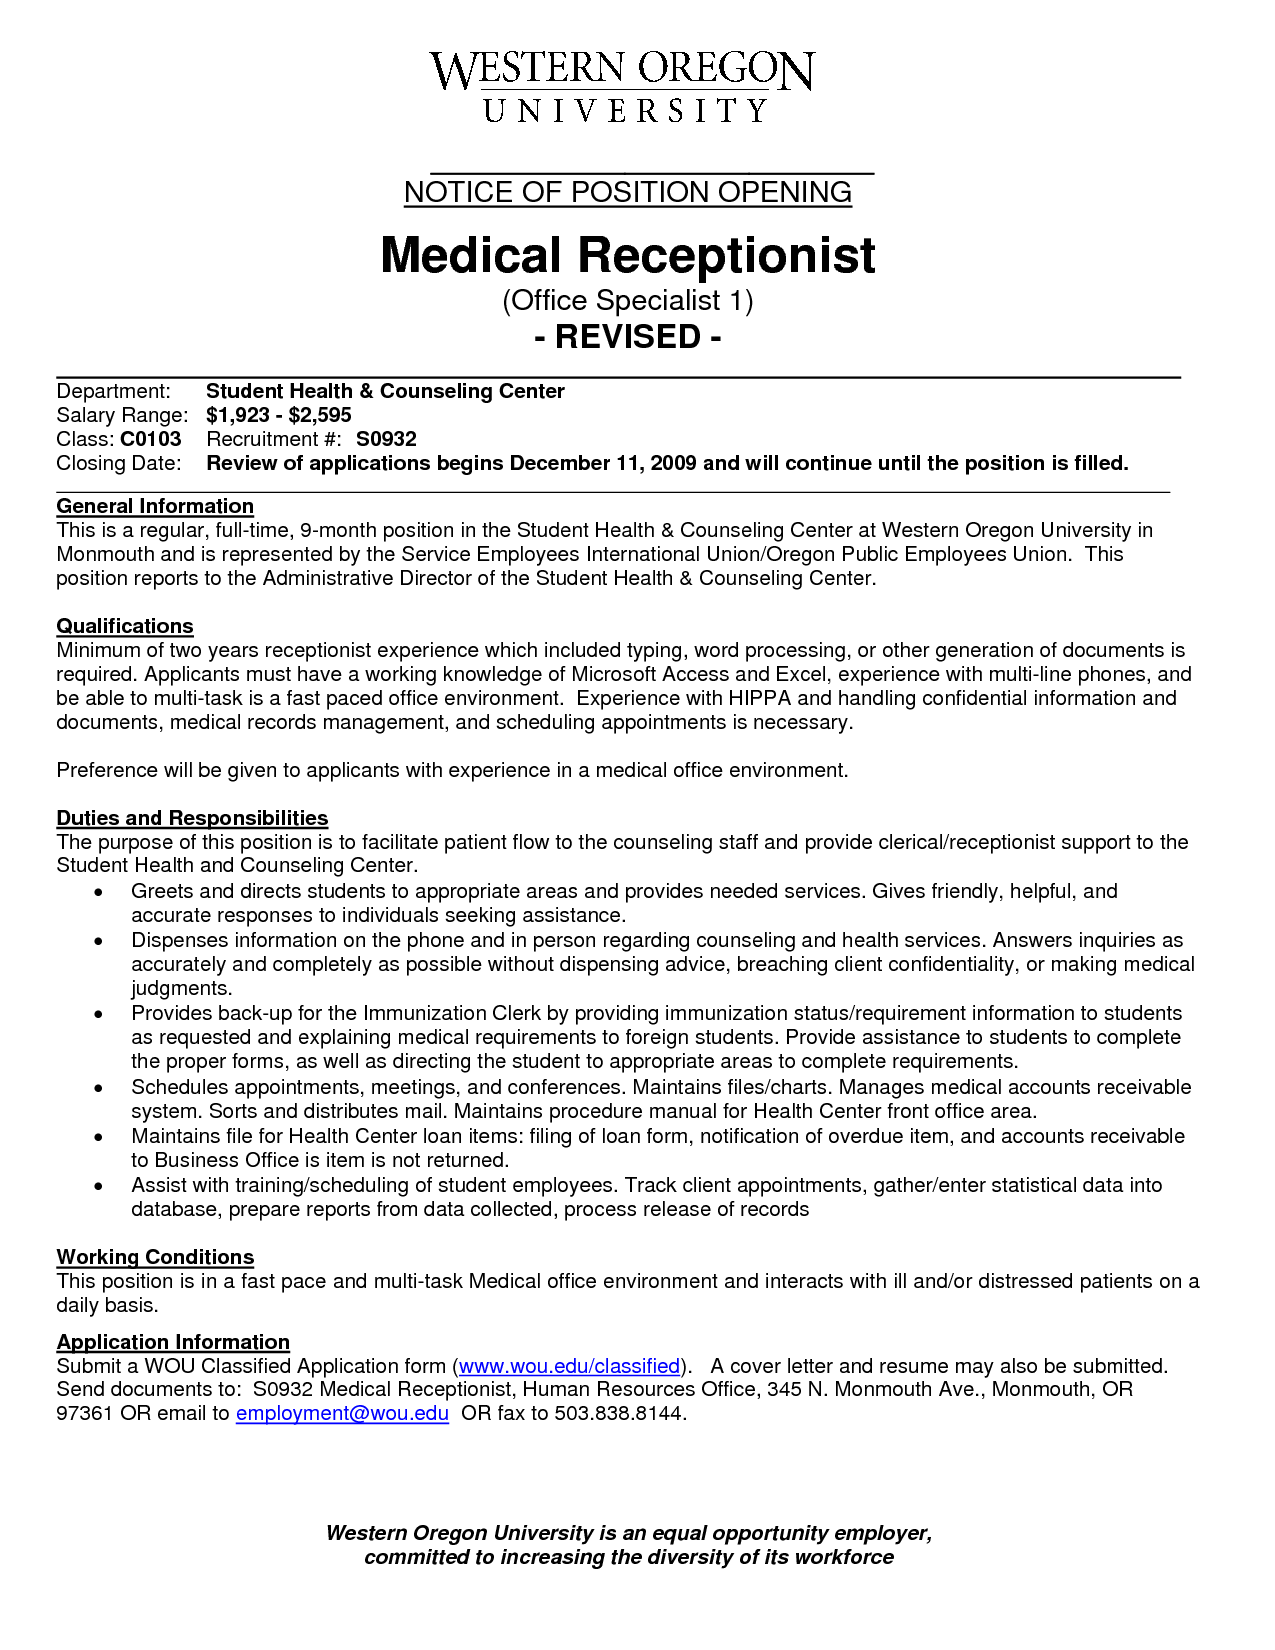 explore free cover letter cover letter sample and more medical receptionist resume - Sample Medical Receptionist Resume